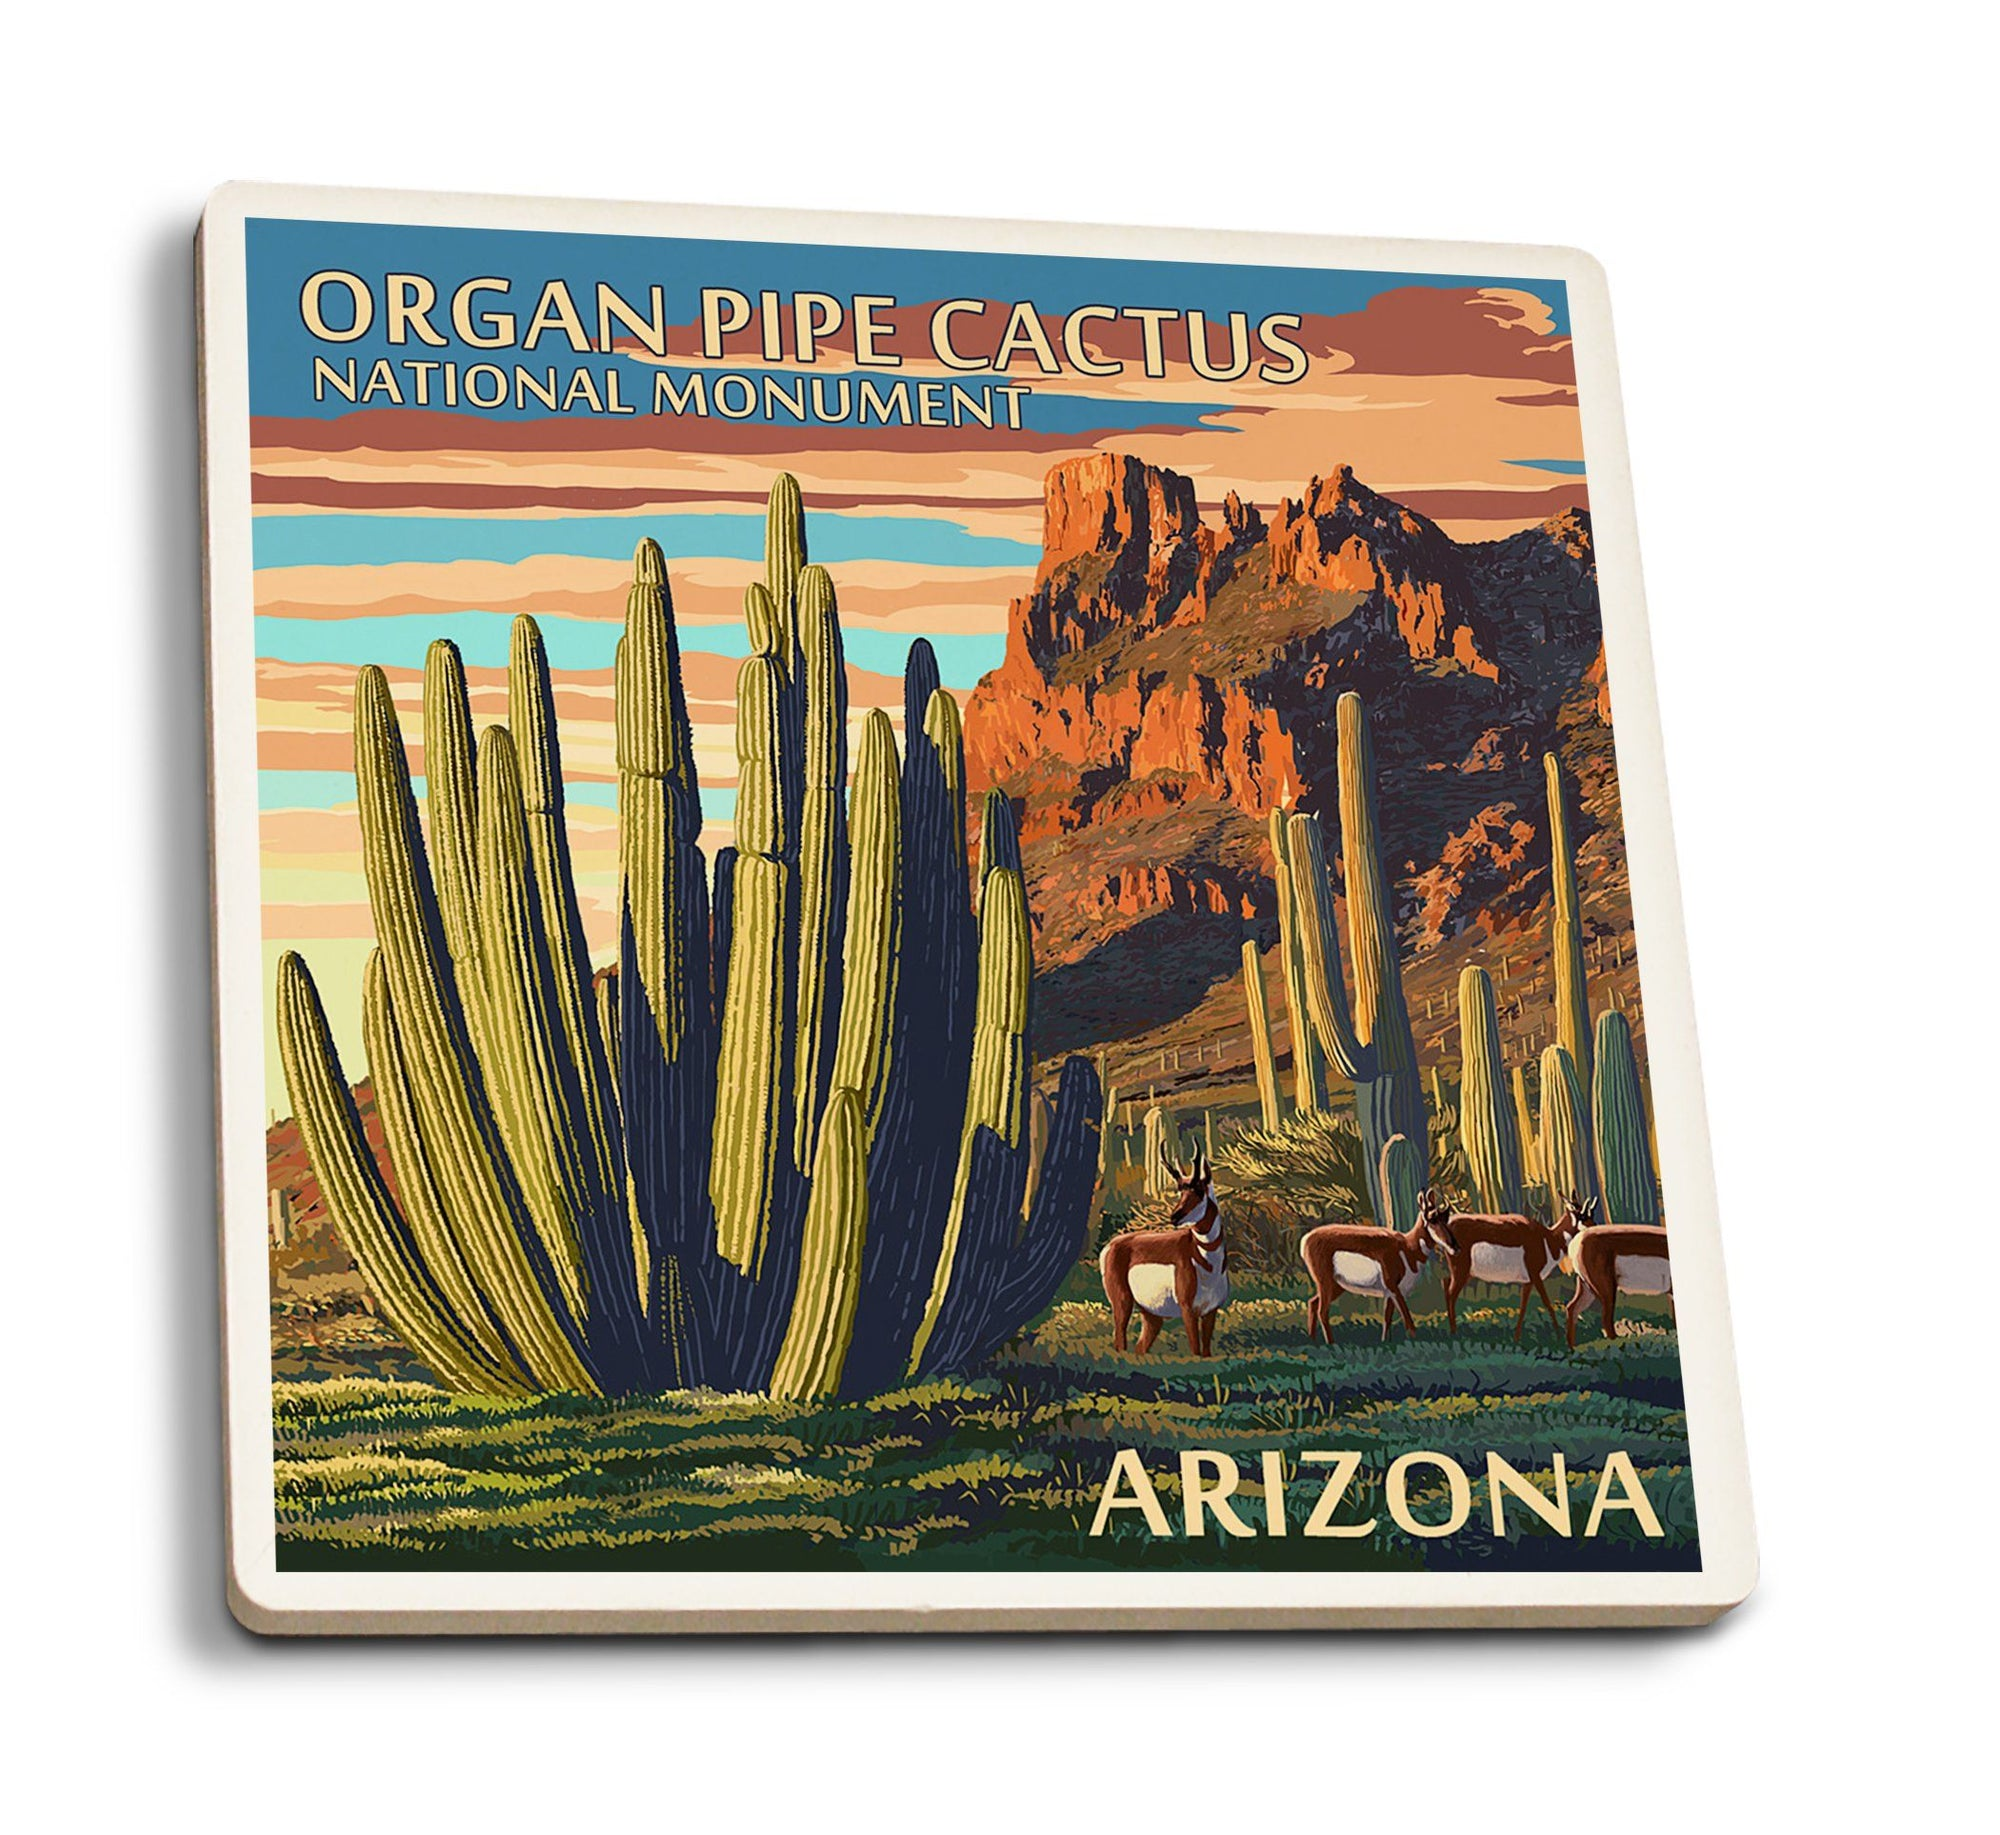 Coaster (Organ Pipe Cactus National Monument, Arizona - Lantern Press Artwork) Coaster Nightingale Boutique Coaster Pack